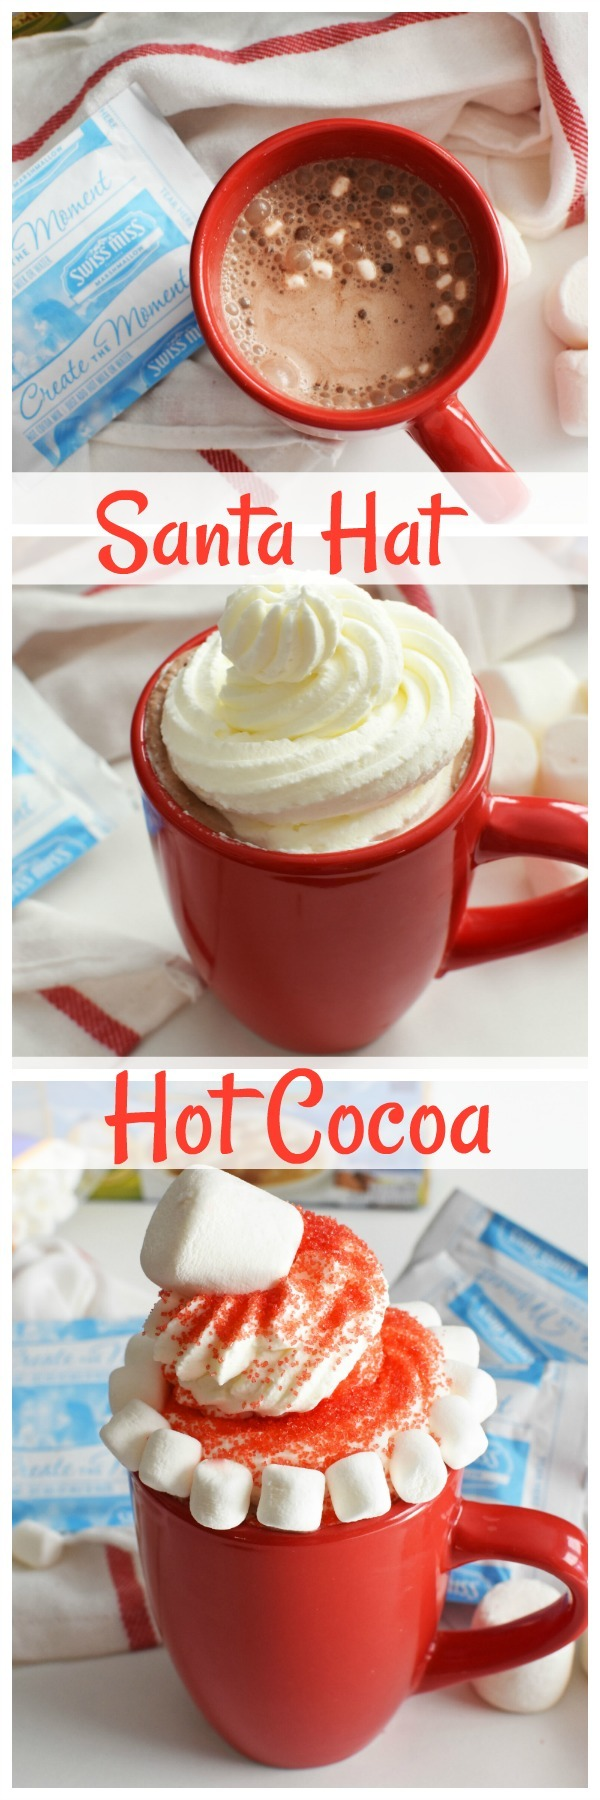 Santa Hat Hot Cocoa